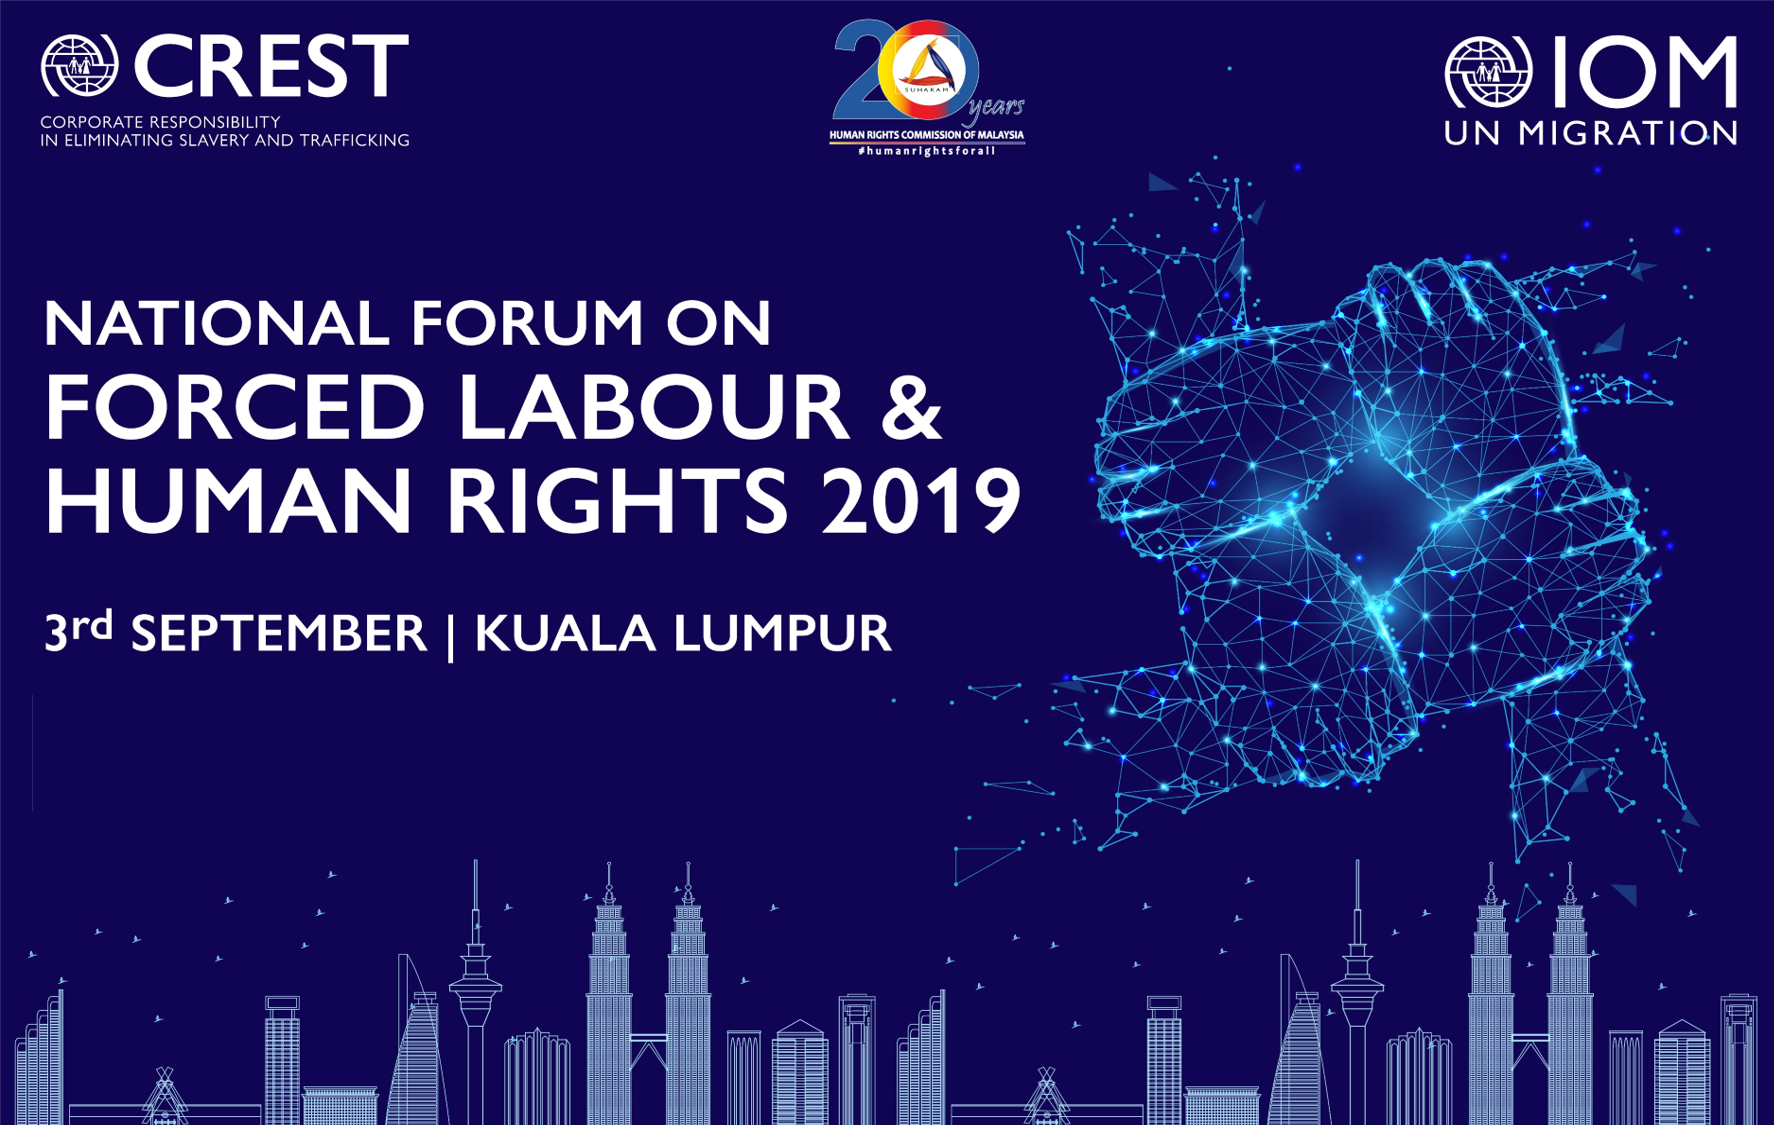 National Forum Addresses Forced Labour And Human Rights In Malaysia International Organization For Migration